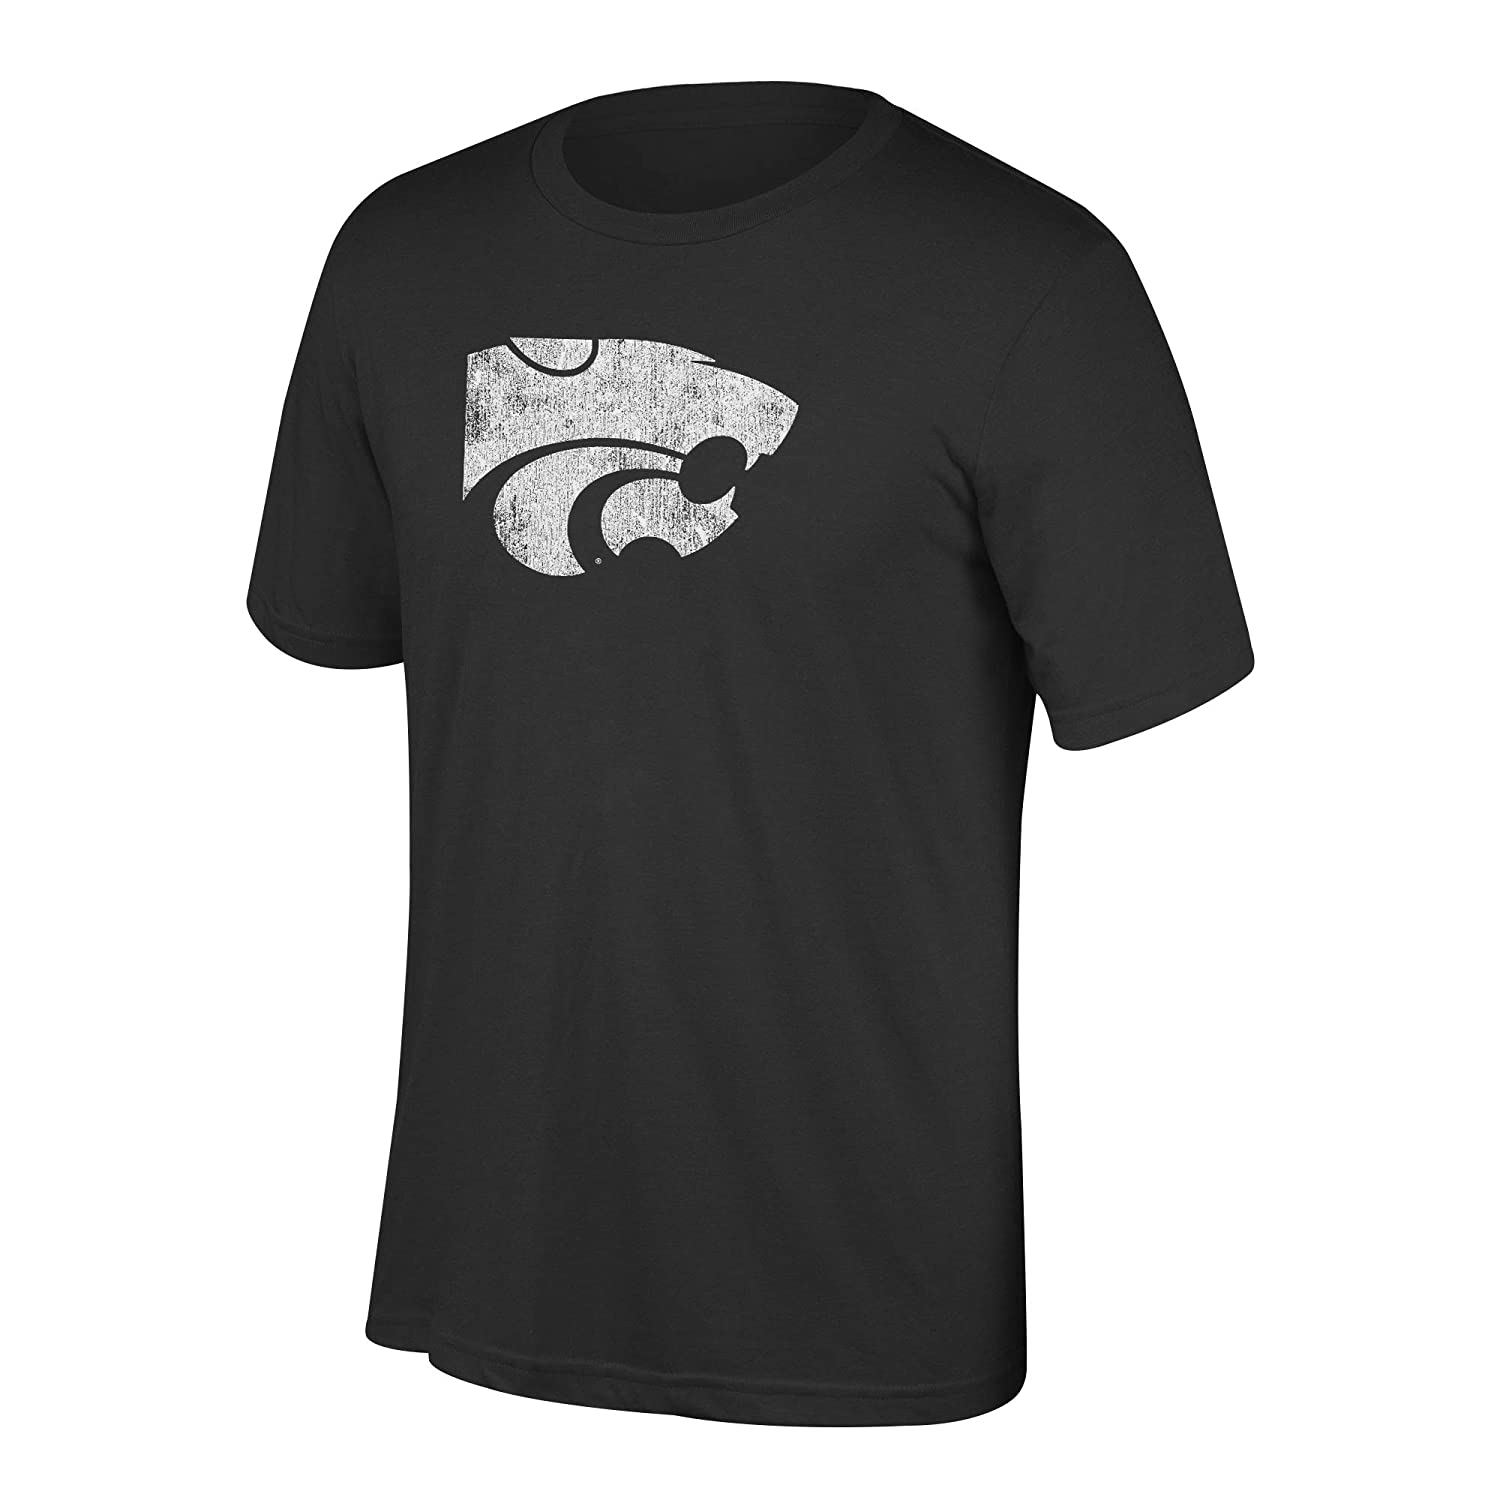 Top of the World NCAA Mens Heritage Tri-Blend Tee